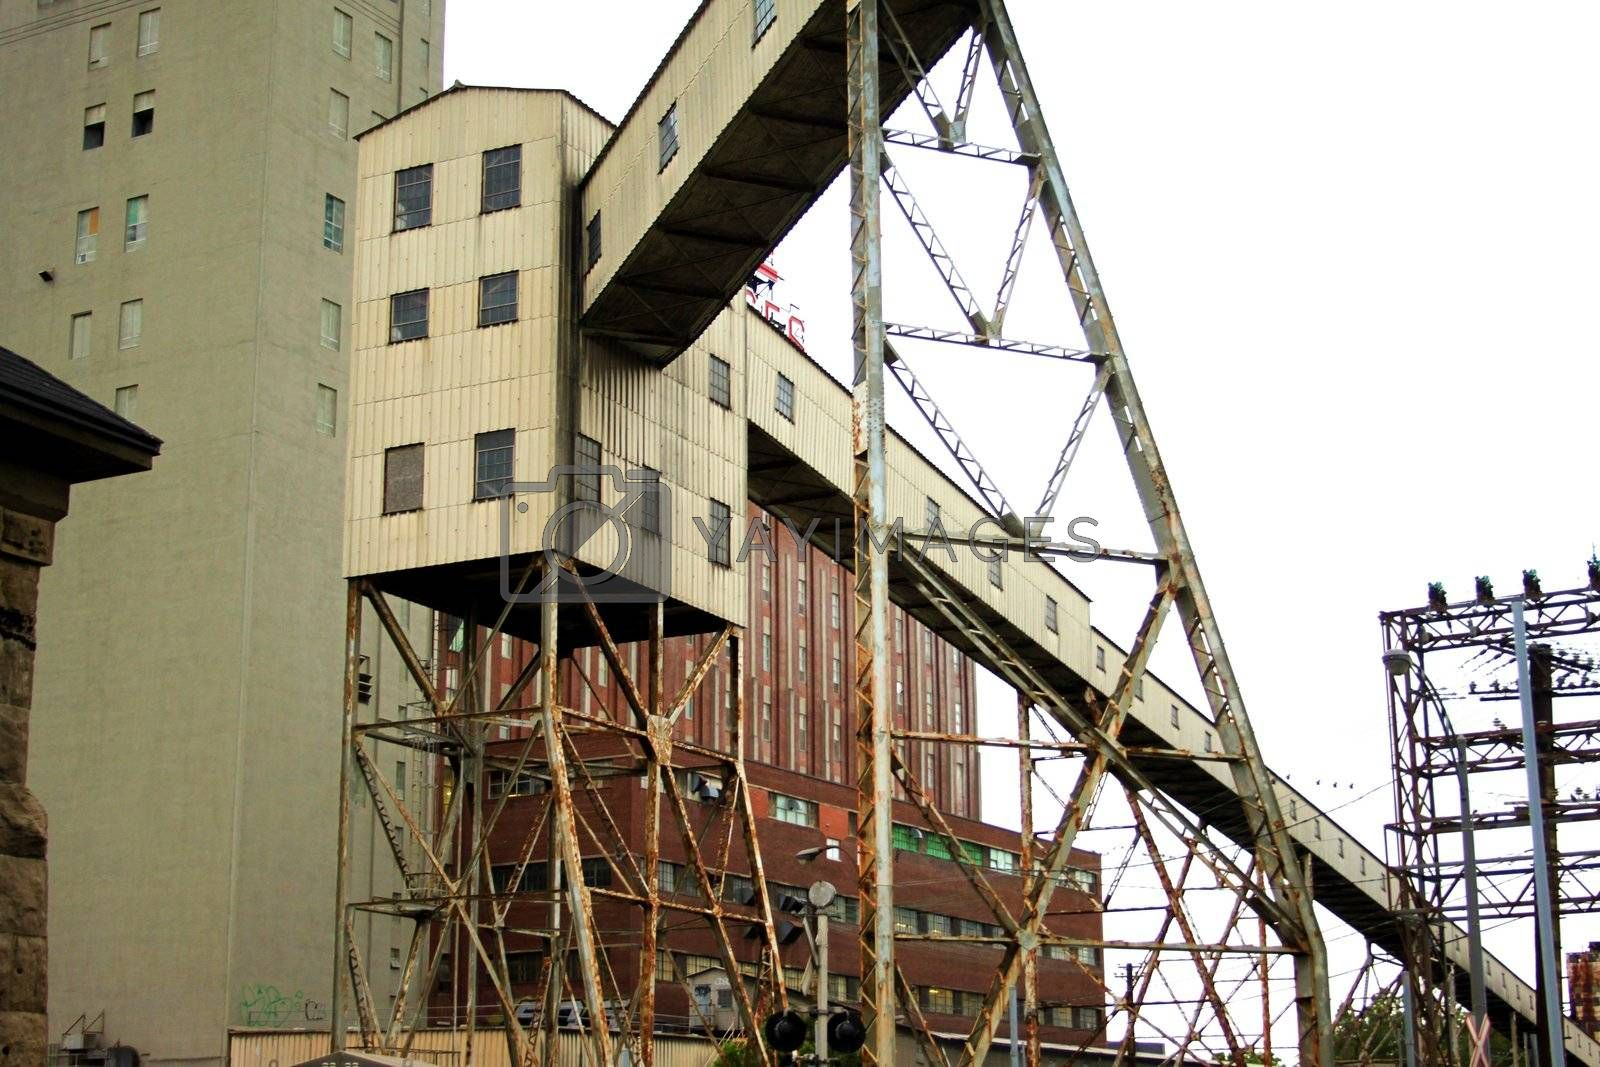 Industrial ramp with pylone at dock side